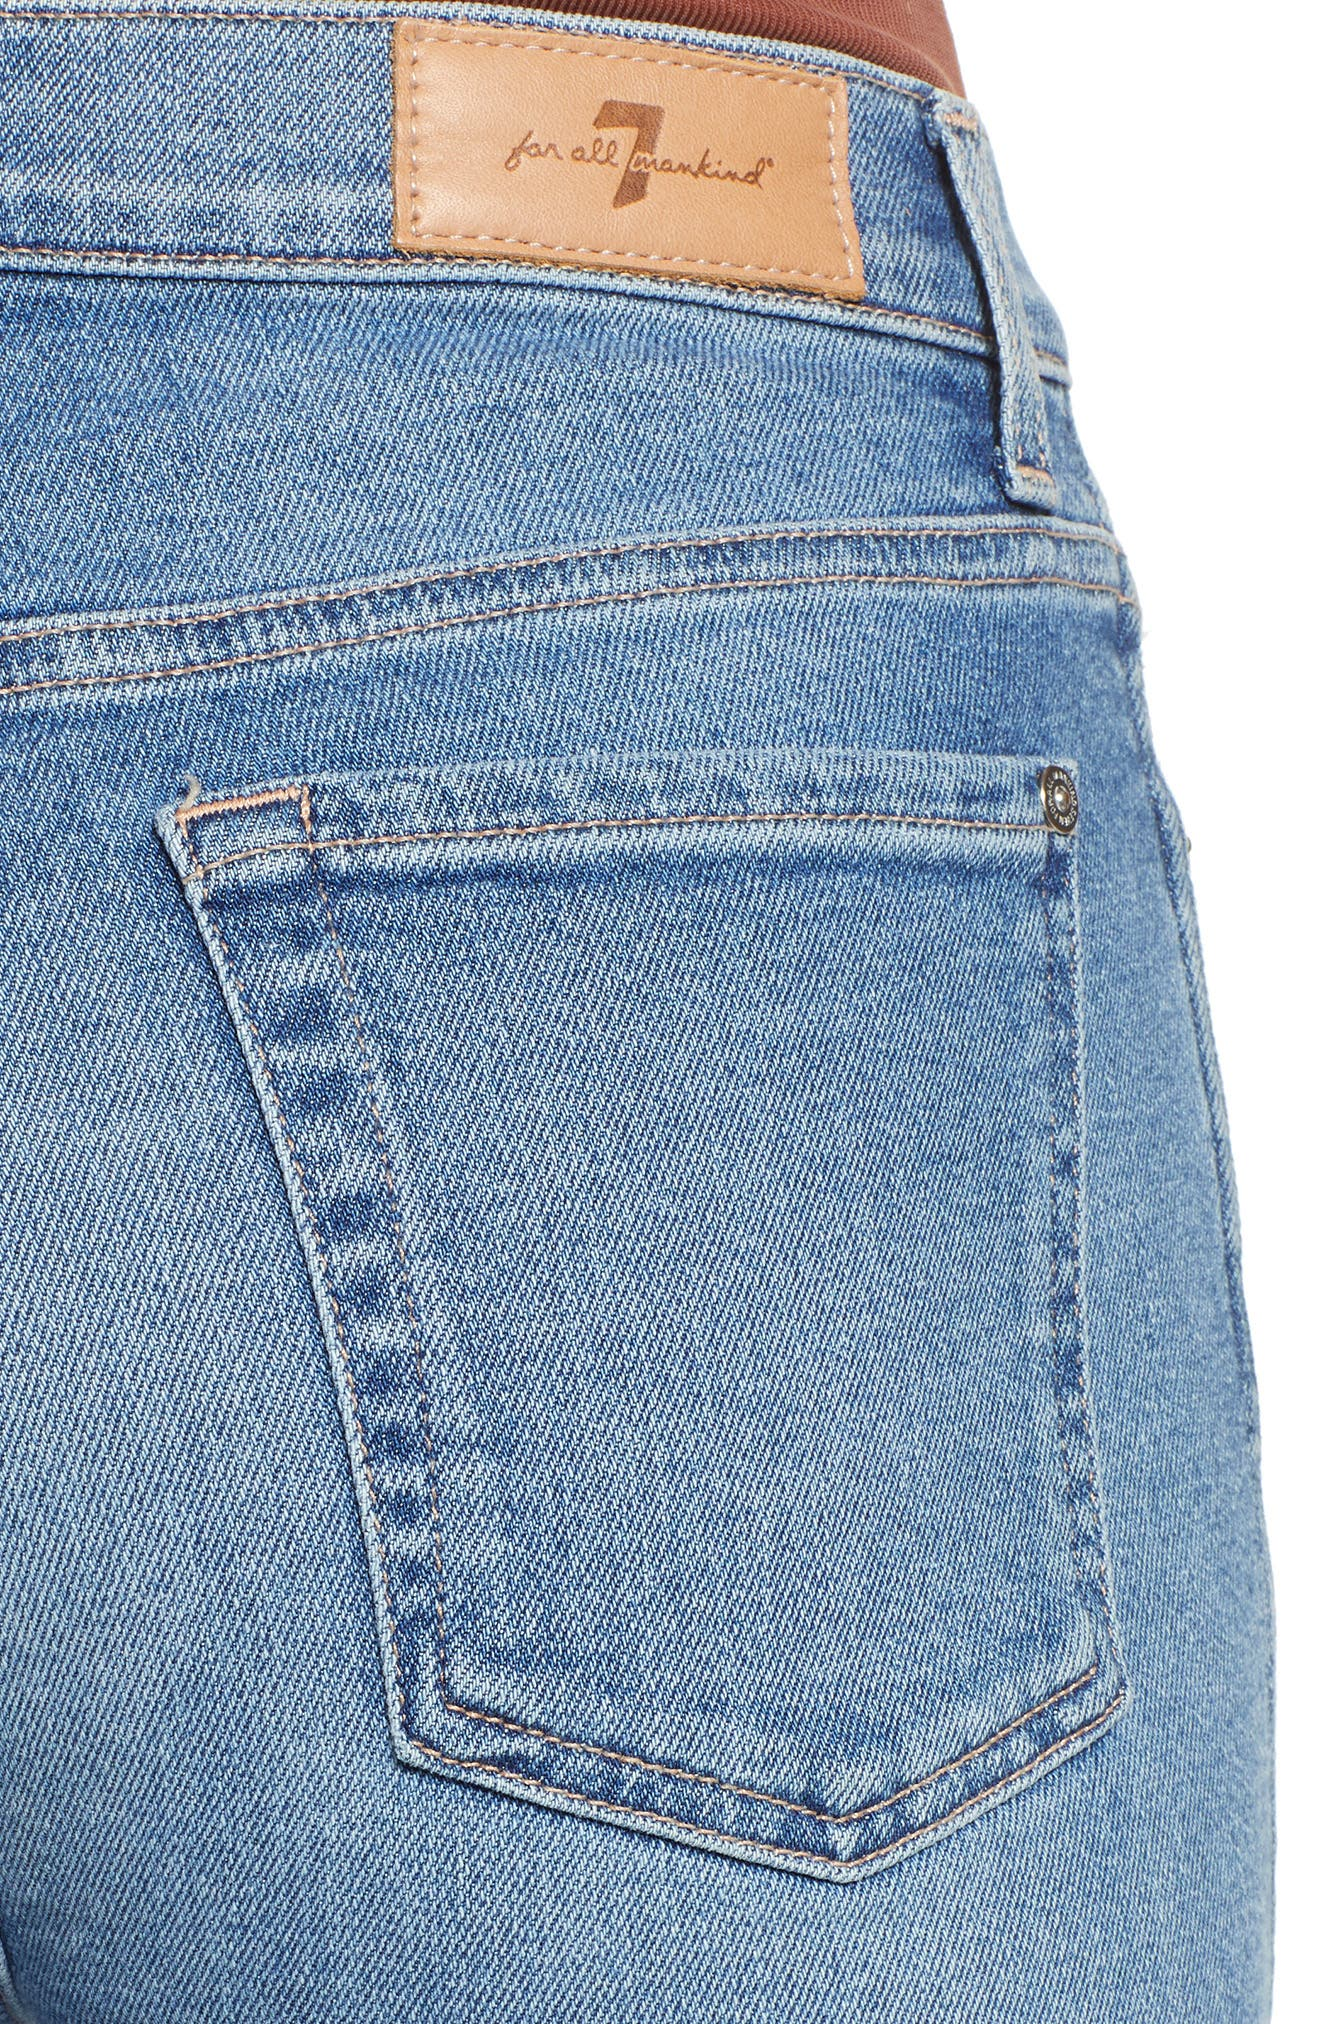 7 FOR ALL MANKIND<SUP>®</SUP>, Edie High Waist Crop Jeans, Alternate thumbnail 5, color, LUXE VINTAGE FLORA